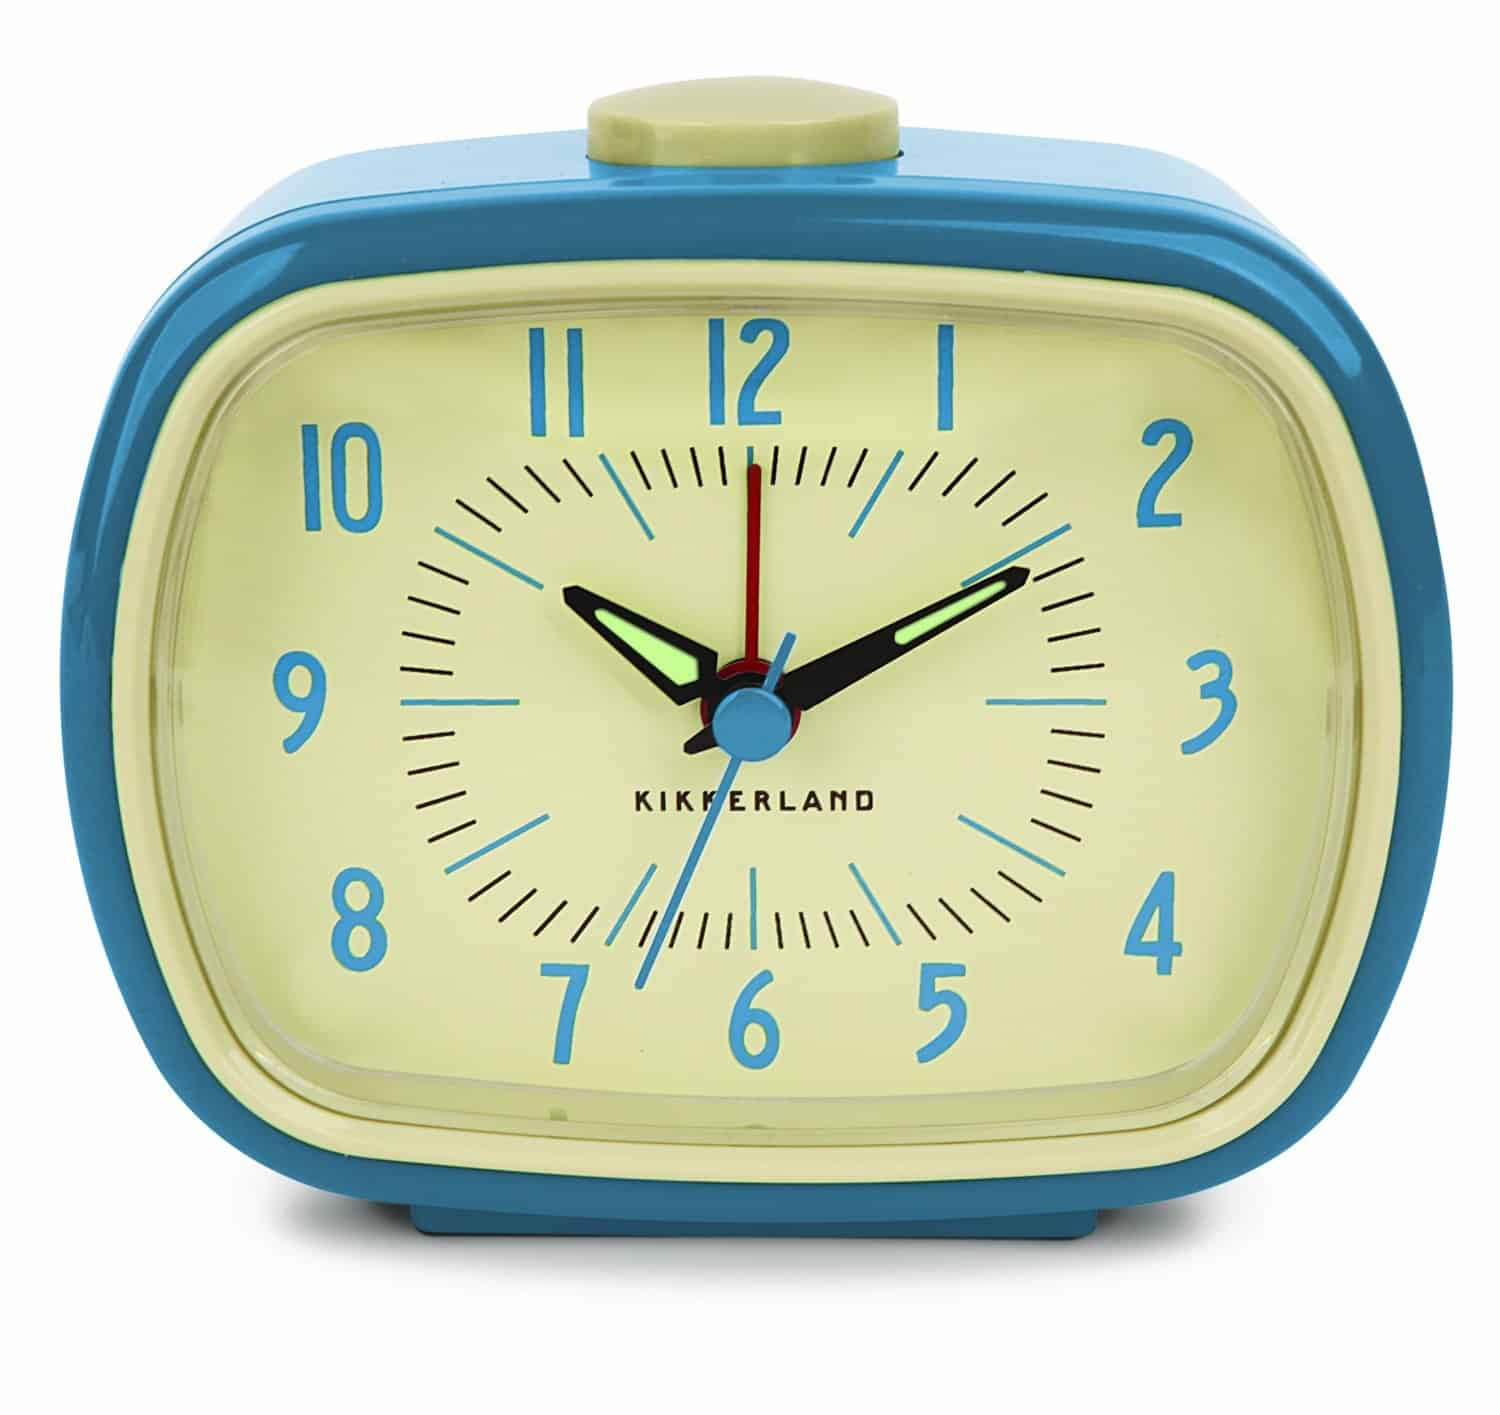 Kikkerland Retro Alarm Clock Blue Cool Gift Idea for Old People